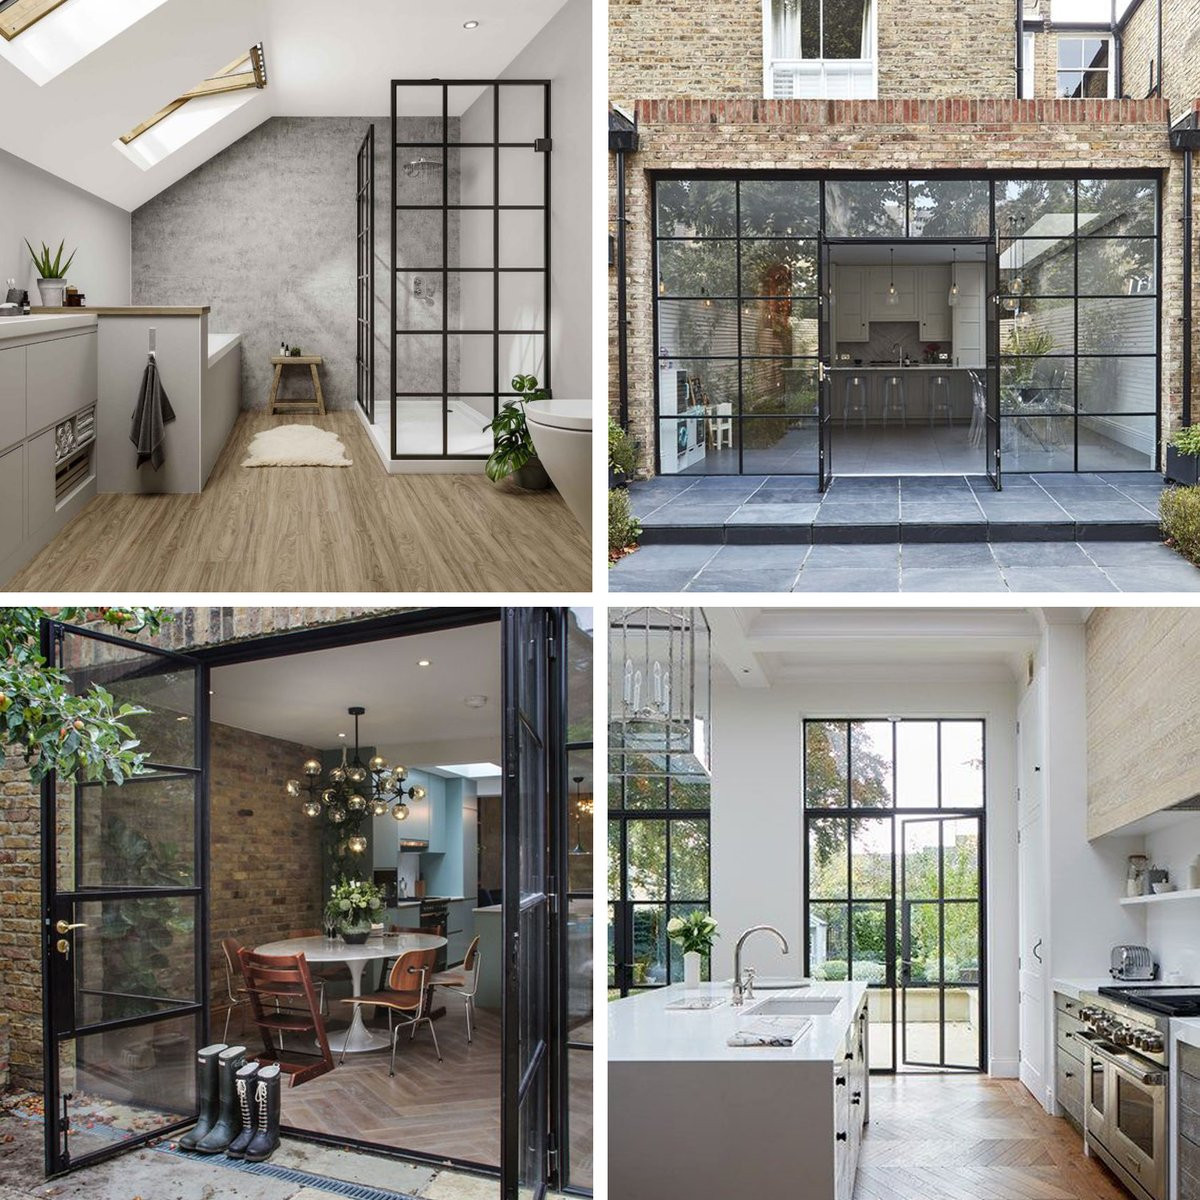 Crittal style partitions & doors - we absolutely love them here at Fisch & we are so glad our Client wants to incorporate them into the rear extension of her gorgeous home #FischDesign #InteriorDesign #InteriorArchitecture #ResidentialDesign #ExternalDesign #Extension #Industrial https://t.co/xc1xlKTT5W